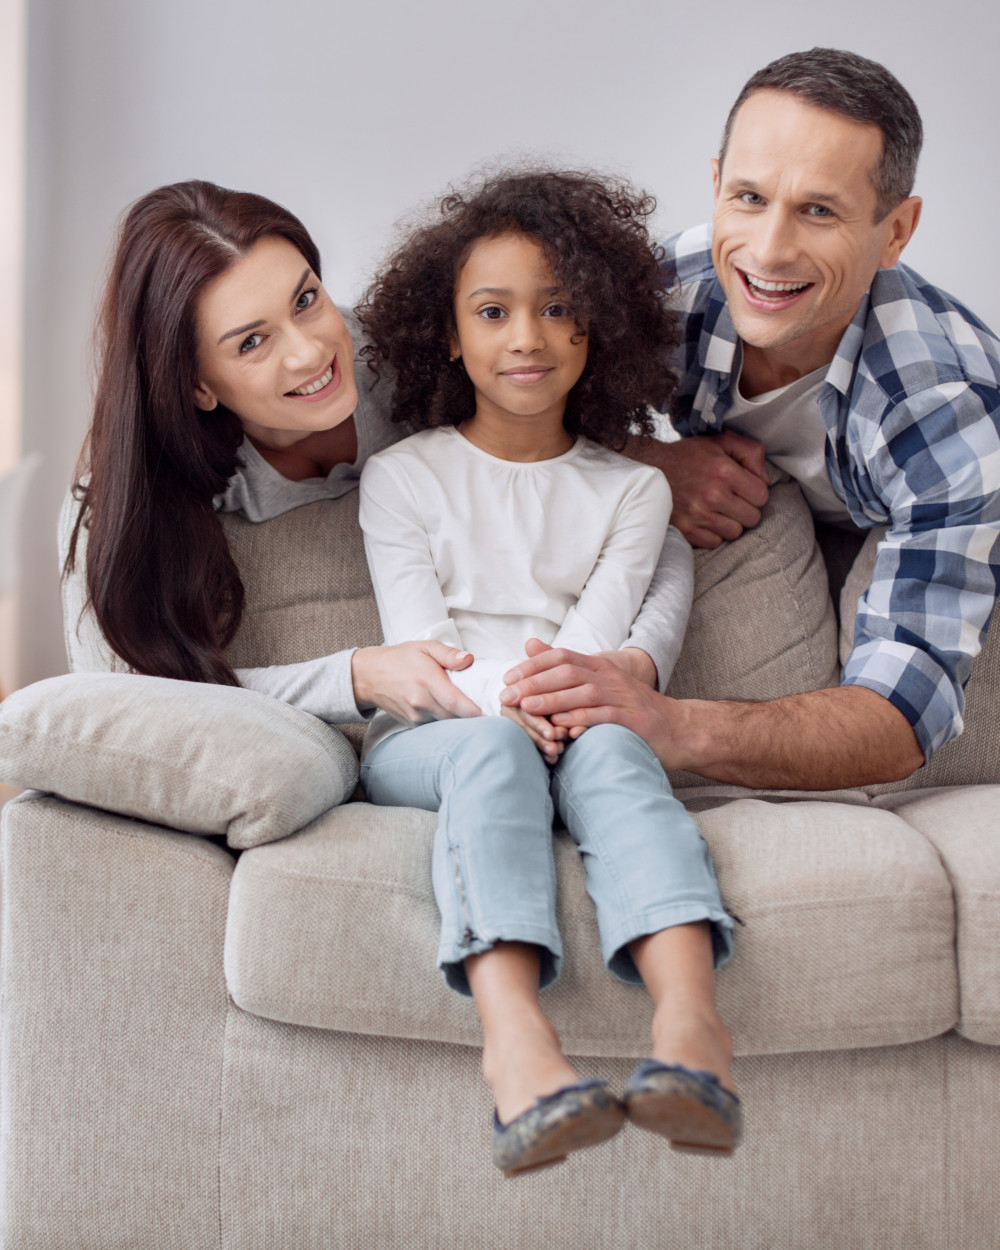 Adoption Home Study Services | Connected by Love Adoptions | Adoption and Home Study Services | Serving all of Florida and Tennessee